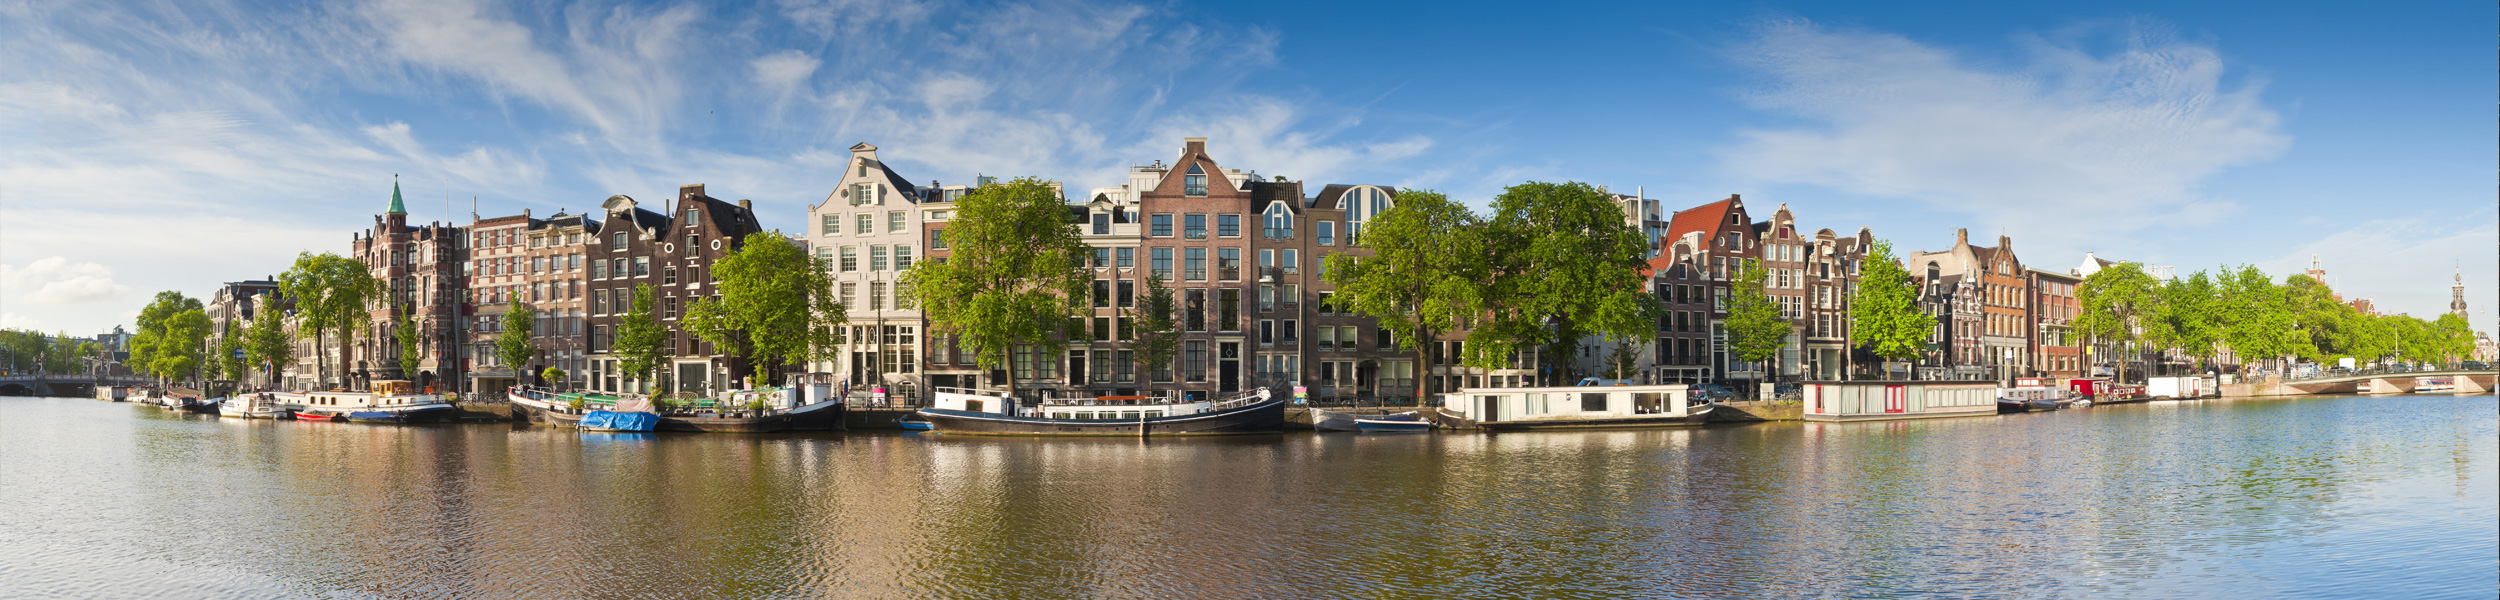 Senior QA Automation Engineer Amsterdam, the Netherlands